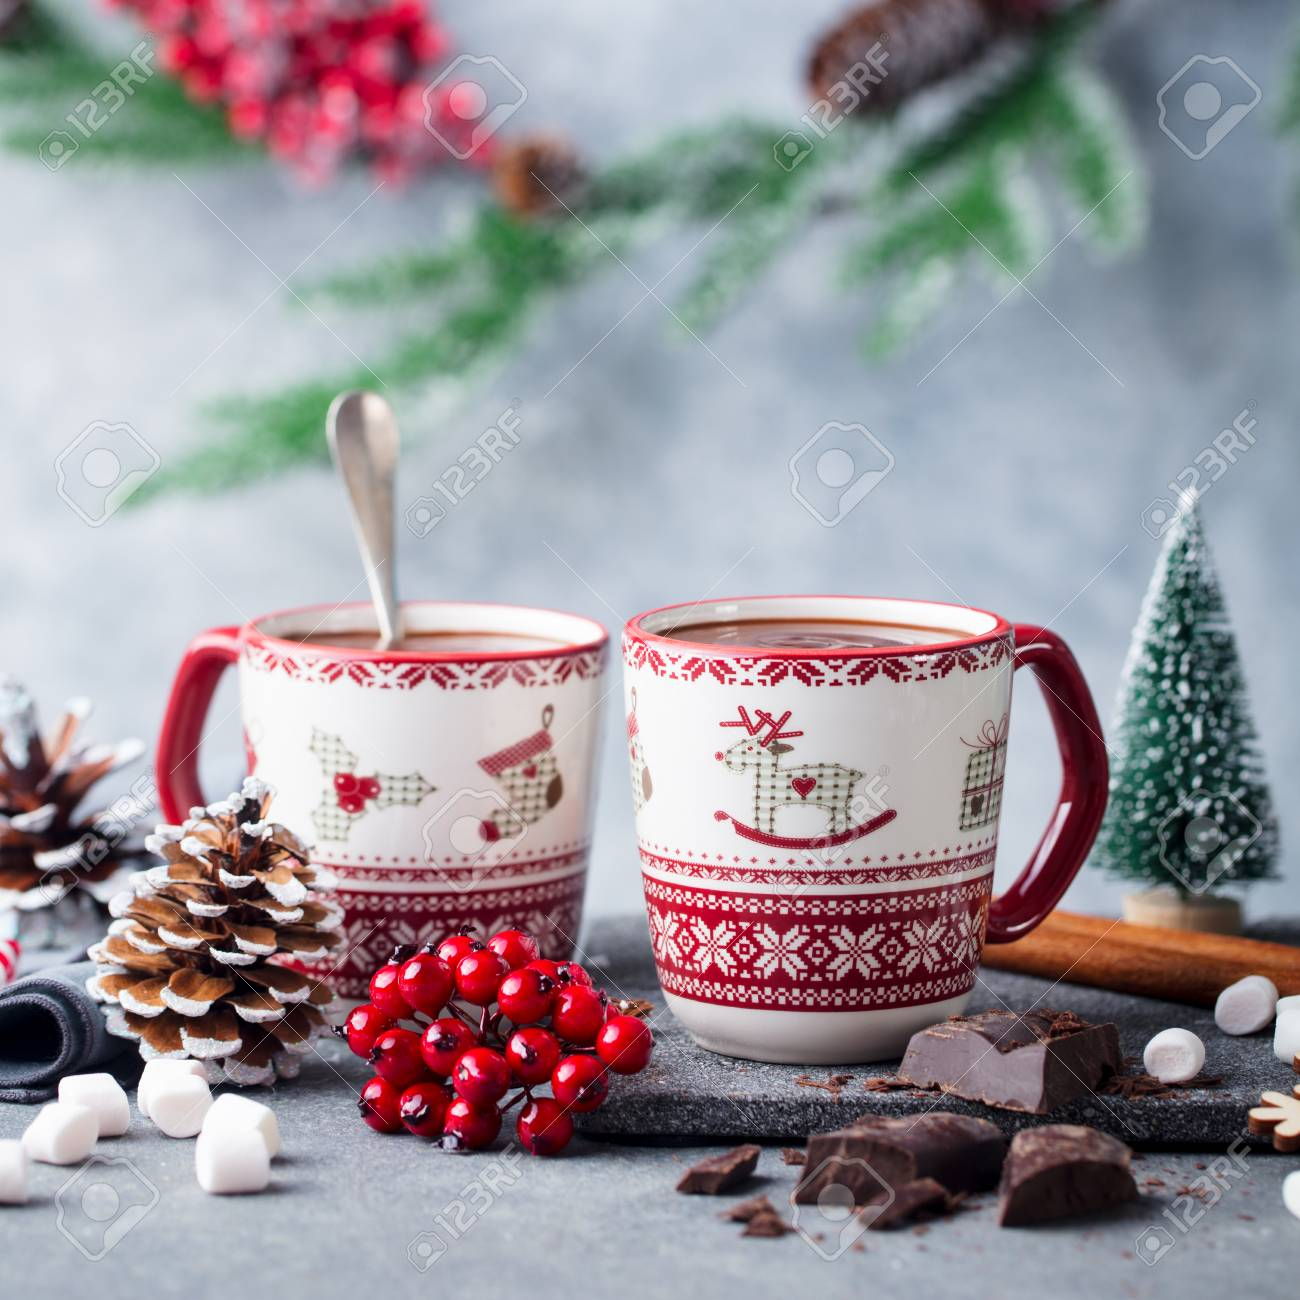 Christmas Mugs.Hot Chocolate With Marshmallows In Christmas Mugs On Grey Background